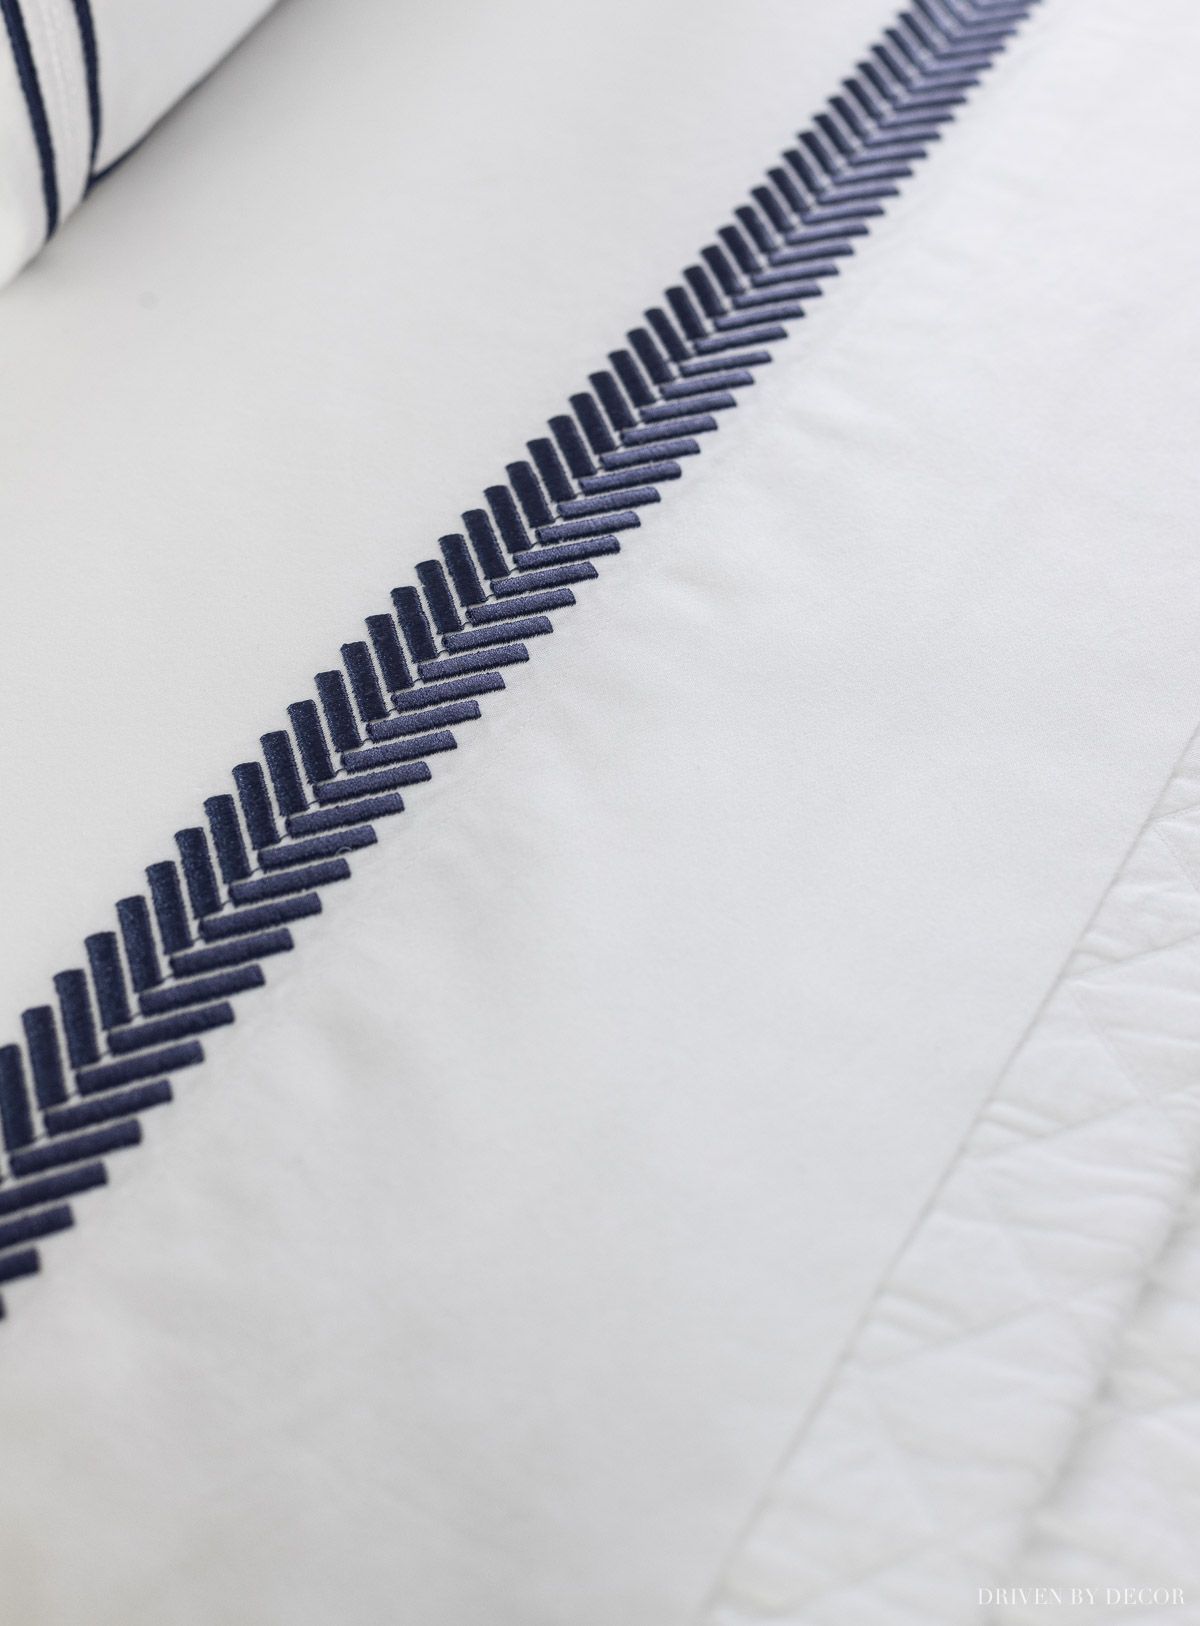 Gorgeous navy embroidered sheet set!